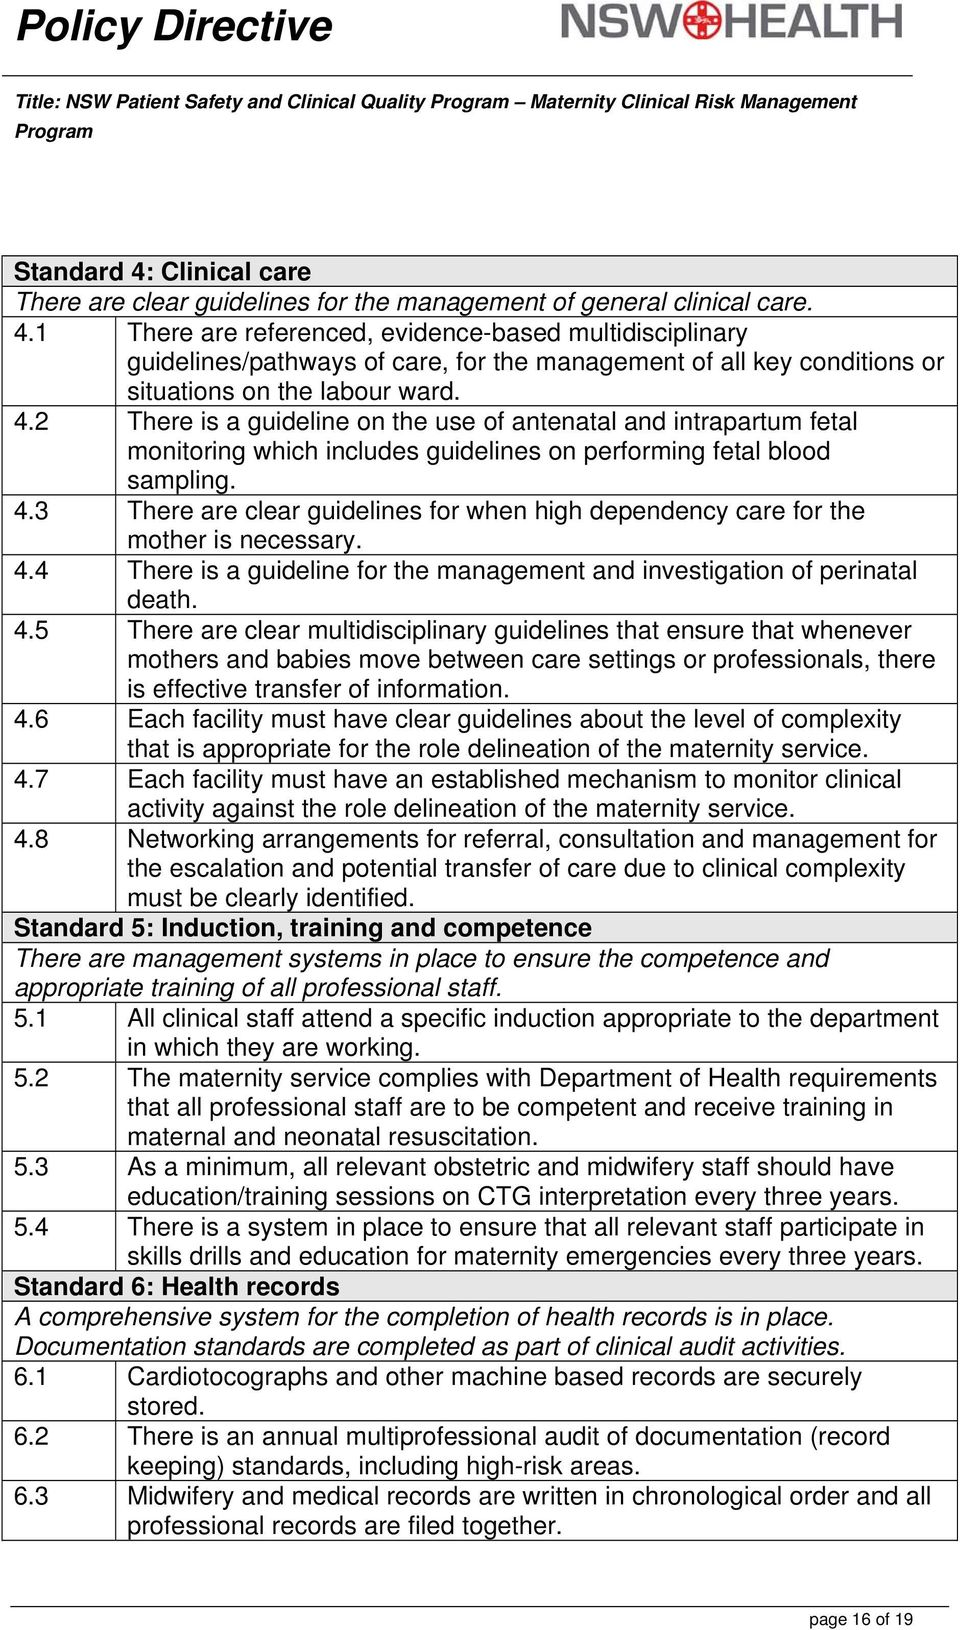 1 There are referenced, evidence-based multidisciplinary guidelines/pathways of care, for the management of all key conditions or situations on the labour ward. 4.